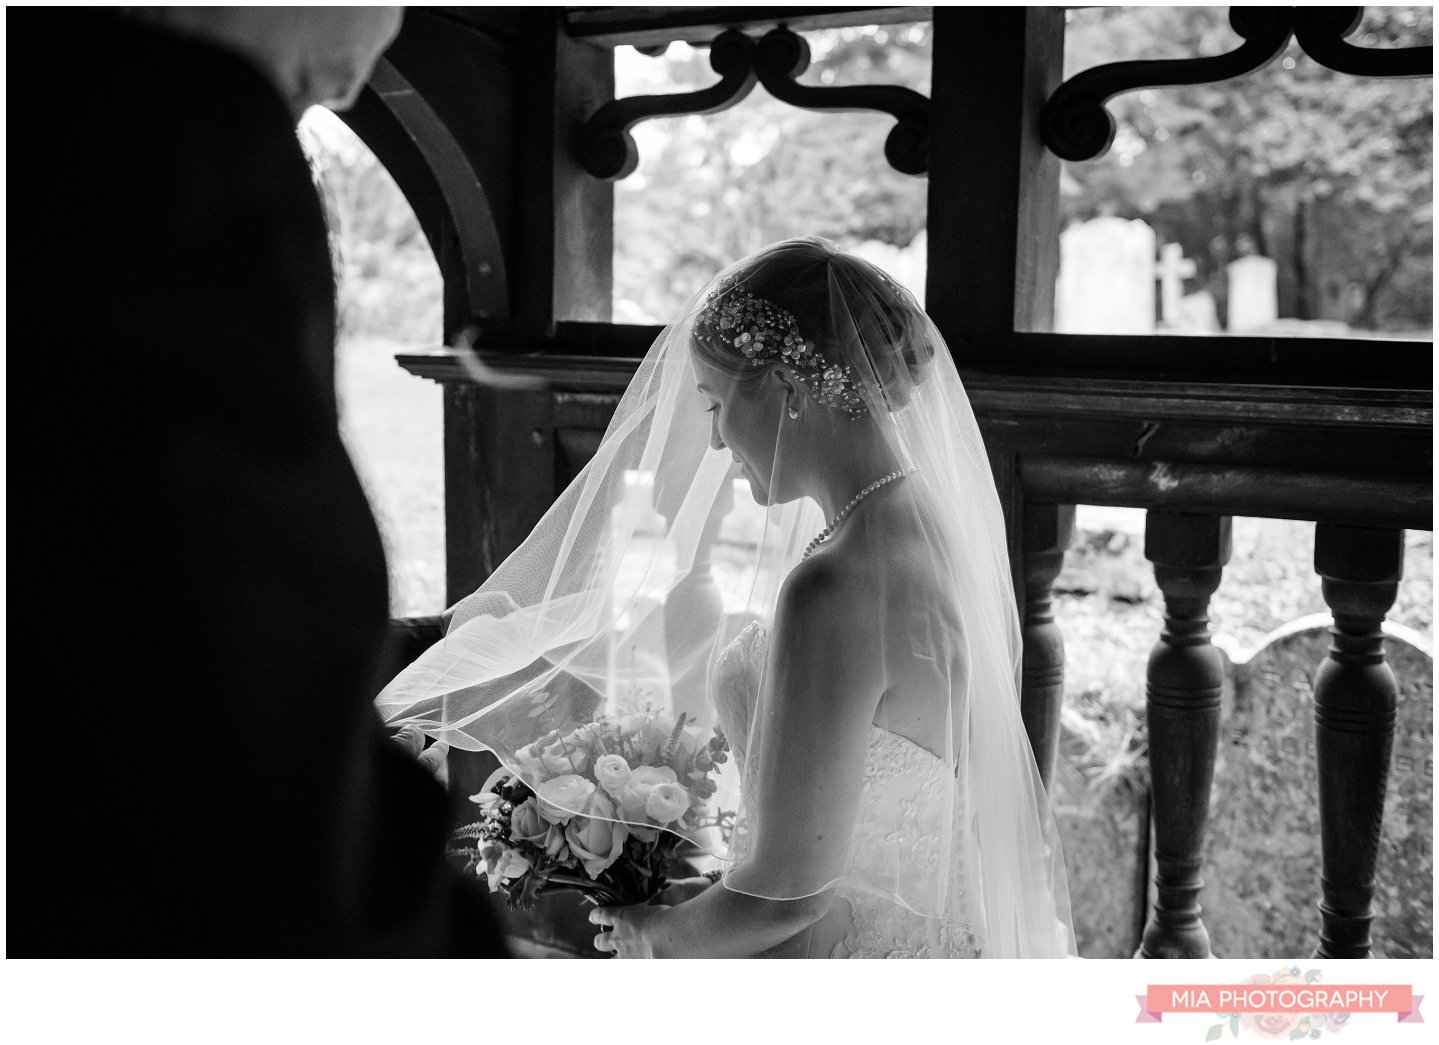 bursledon wedding - st leanard's church